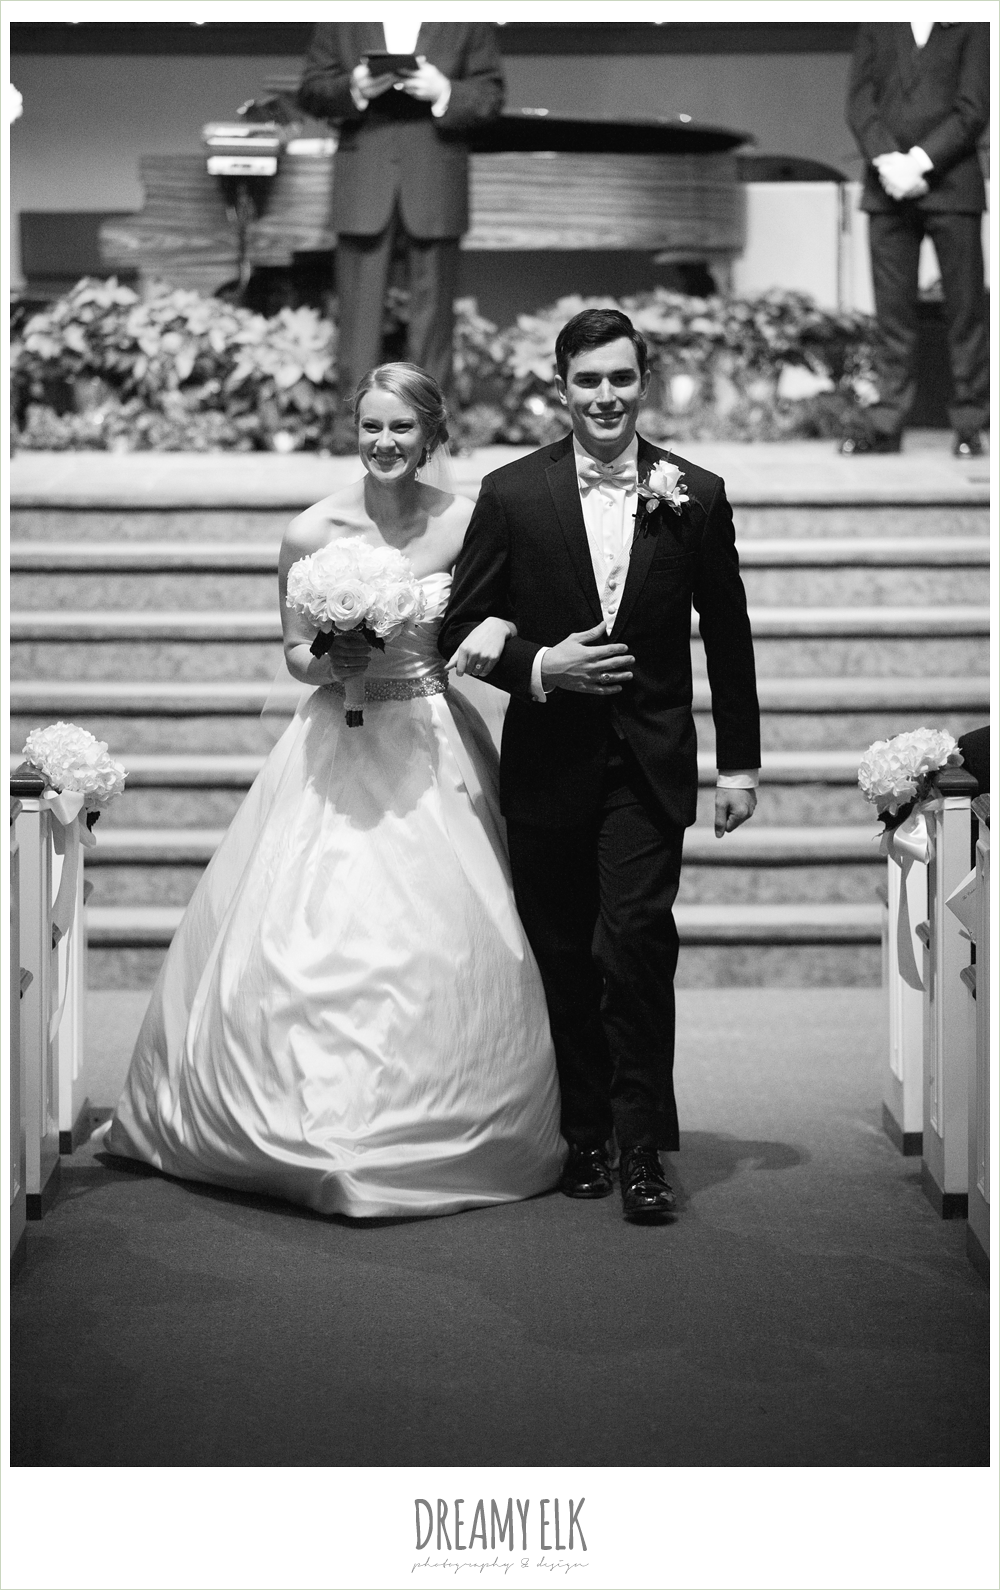 bride and groom walking down the aisle, winter wedding, austin wedding photographer, dreamy elk photography and design